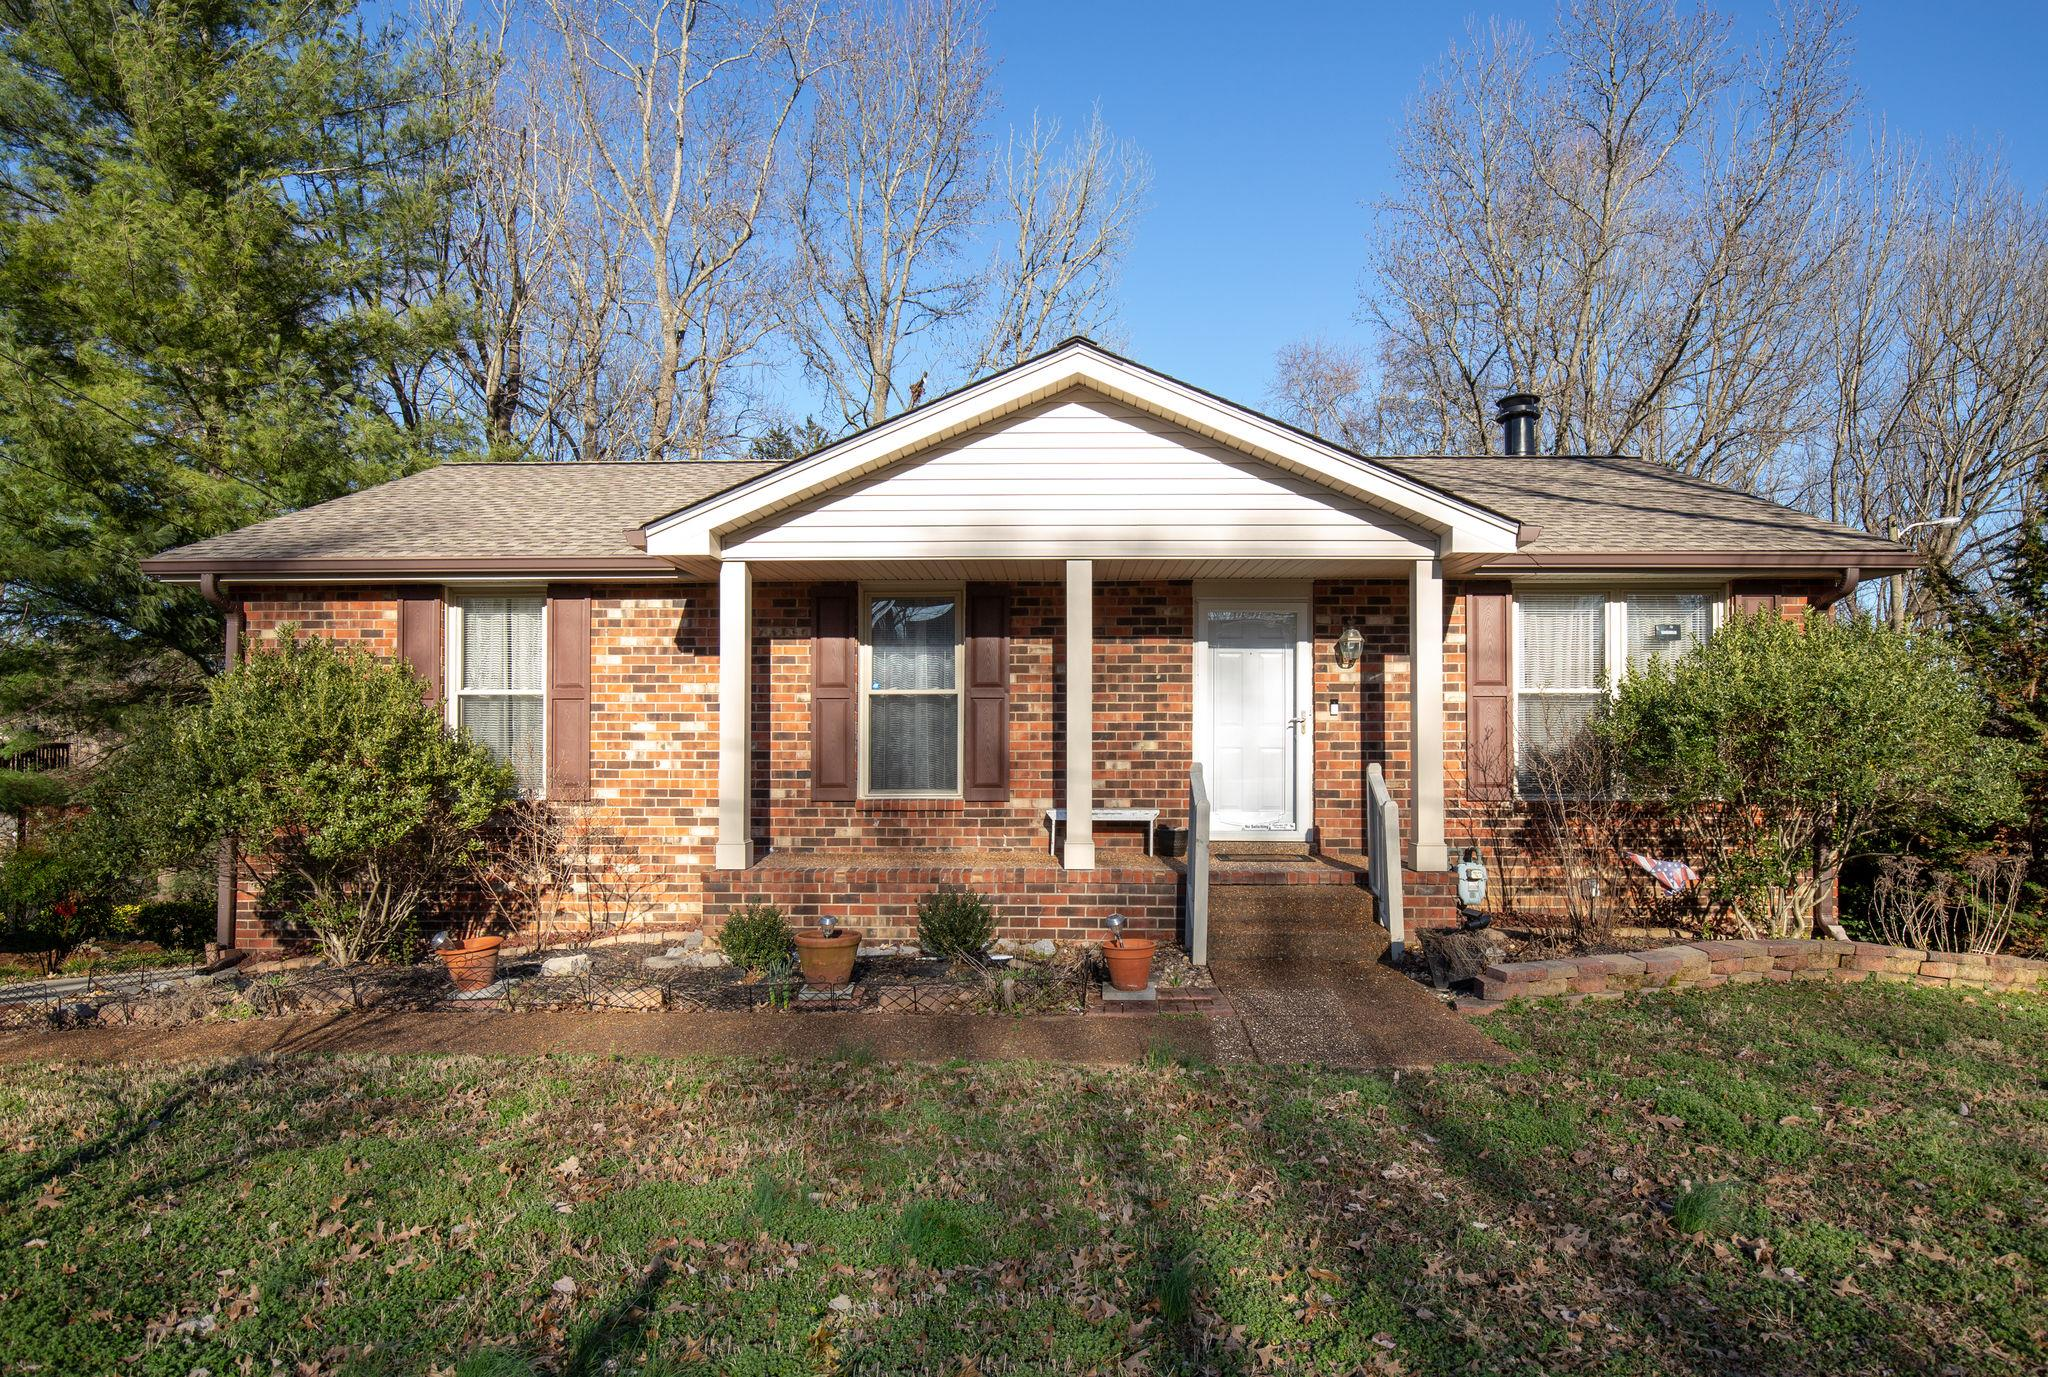 733 Albany Dr, Hermitage in Davidson County County, TN 37076 Home for Sale